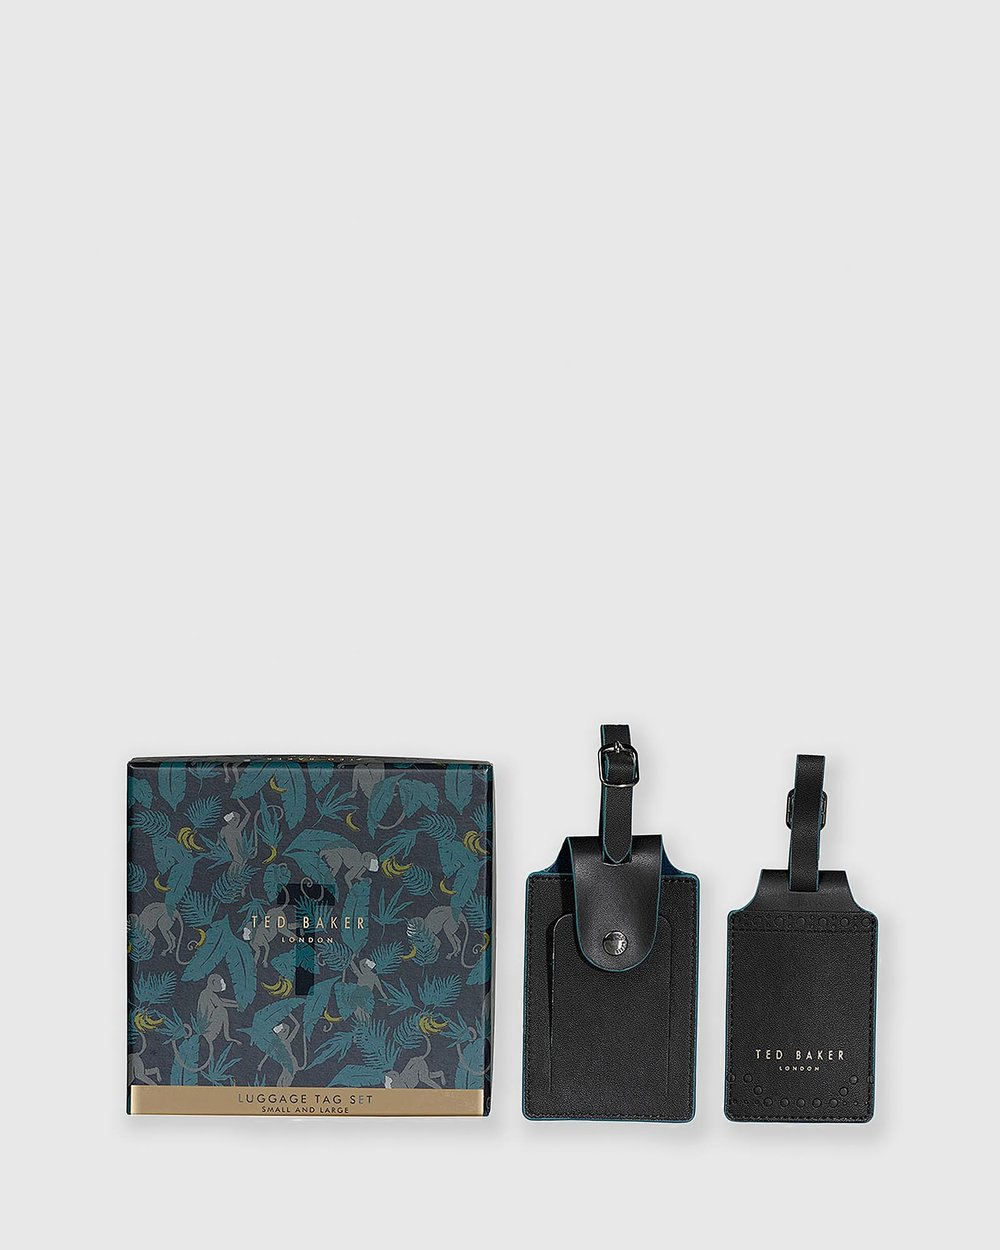 73820ec6e6feab Luggage Tag Set by Ted Baker Online